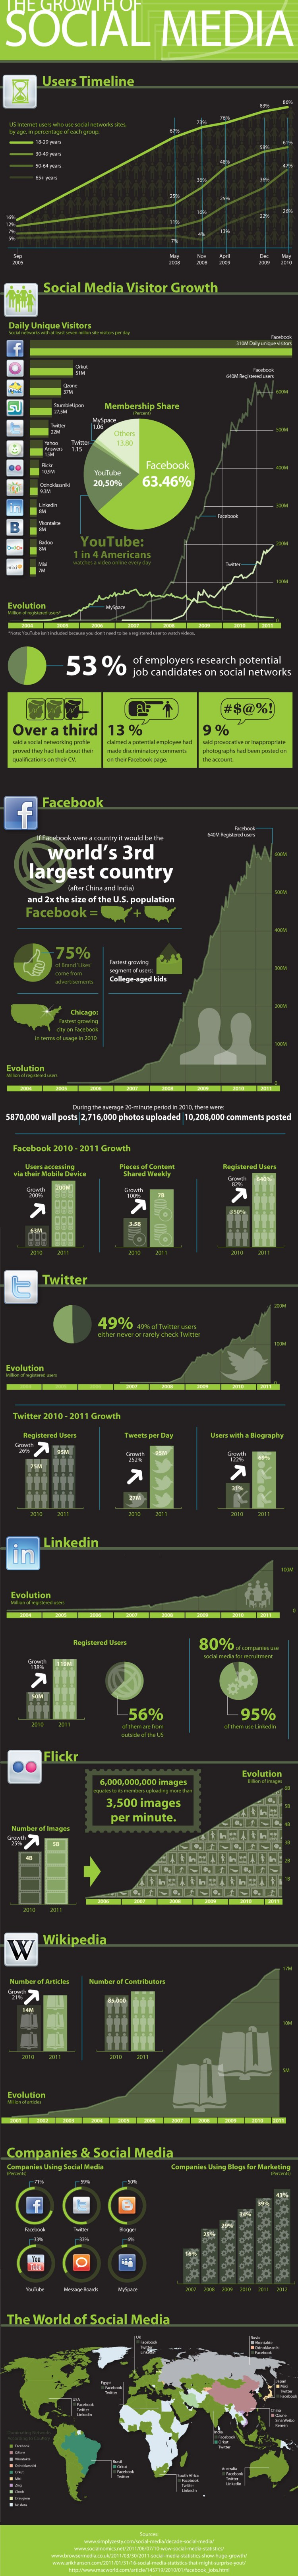 The Growth of Social Media: AnInfographic